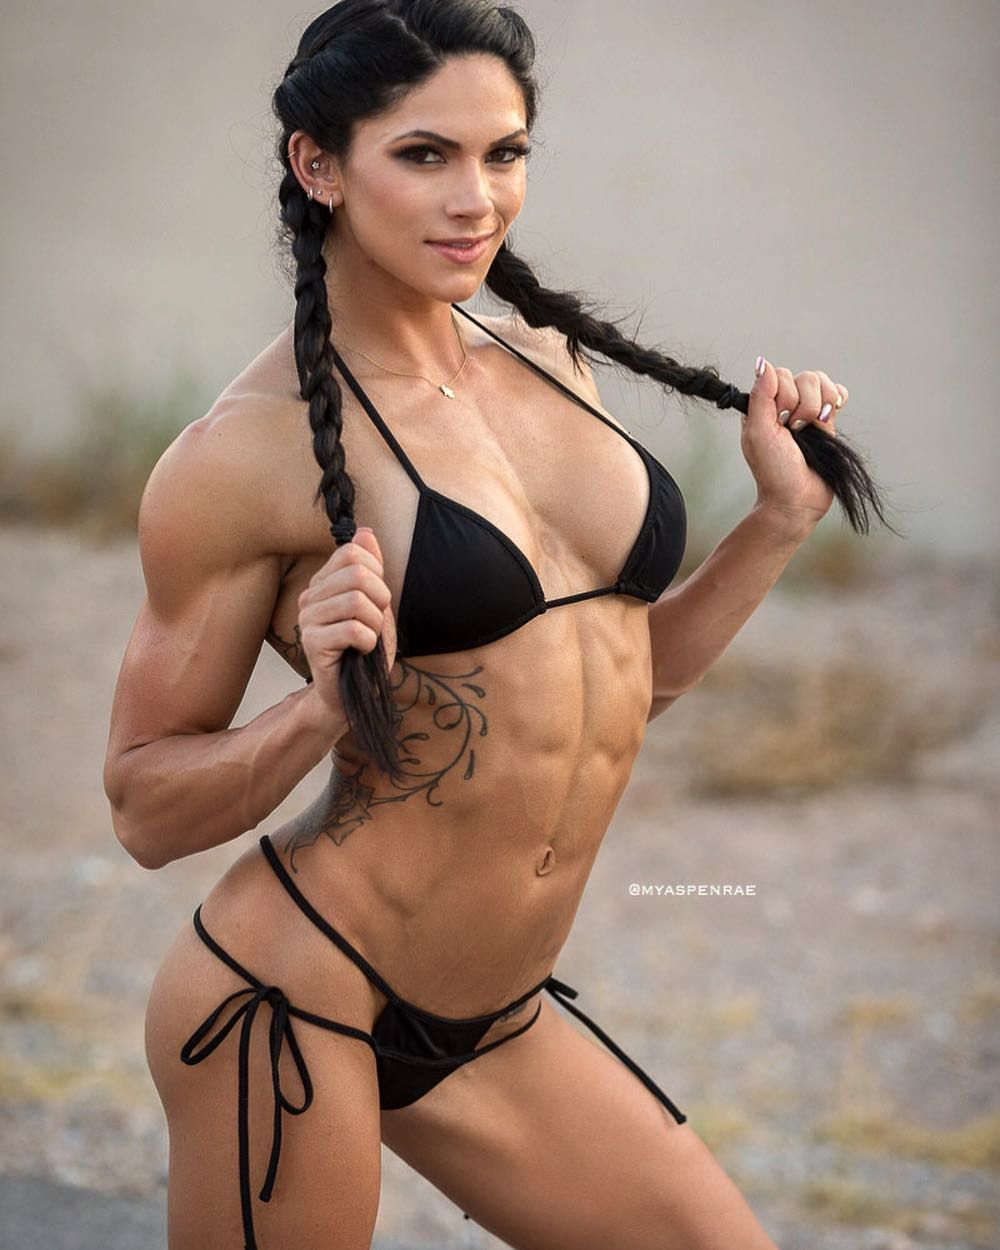 Aspen Rae Nude Photos 11